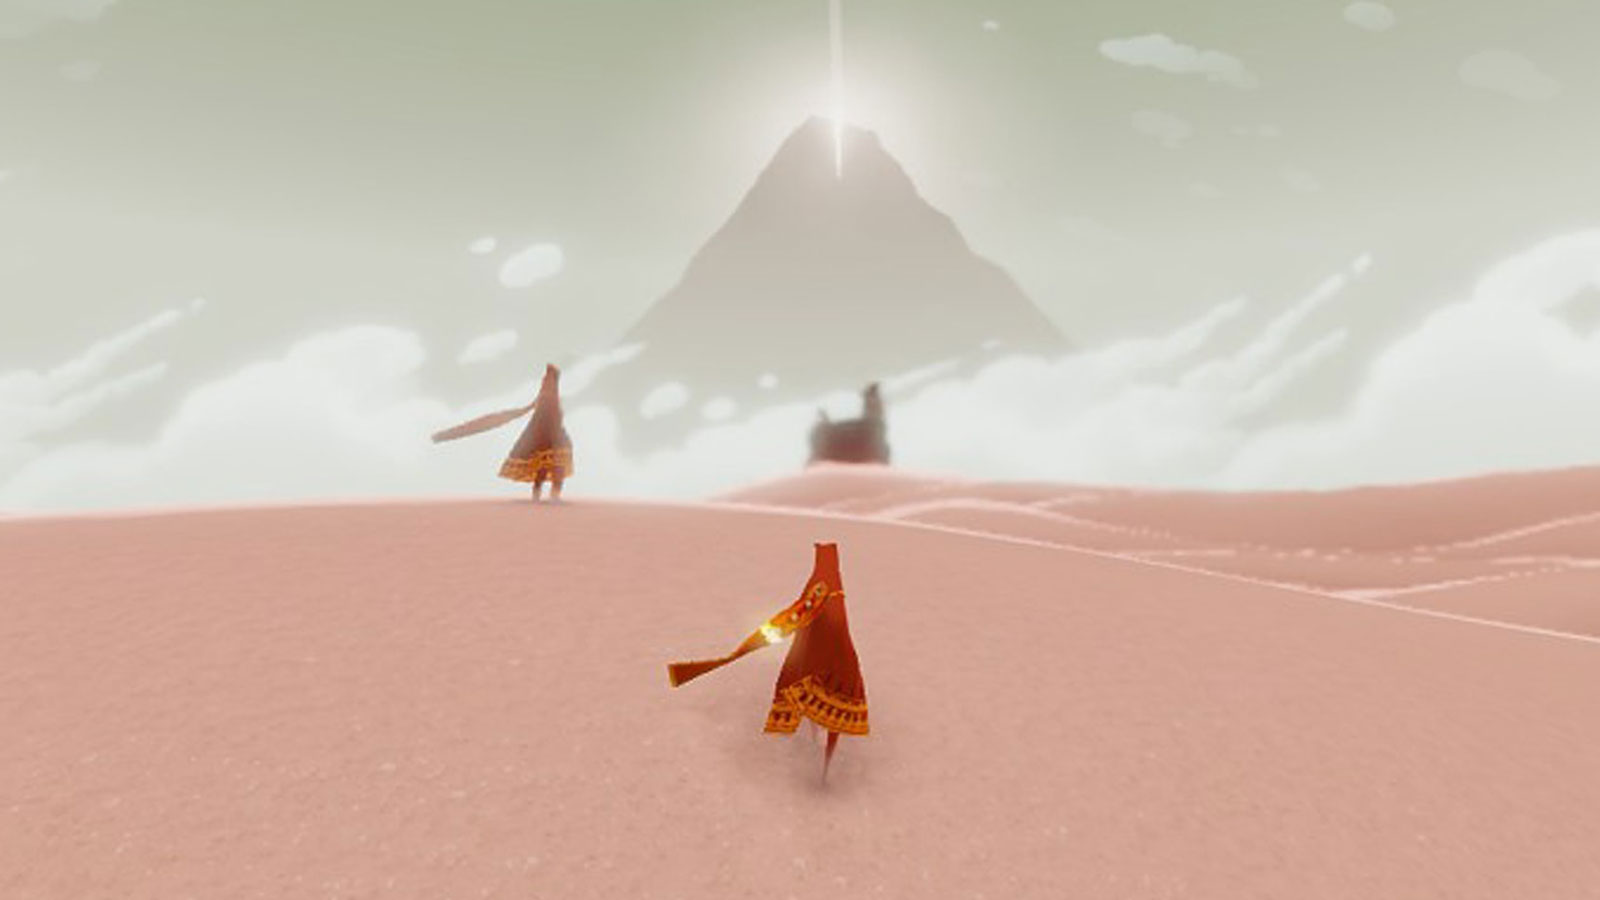 Screenshot from Playstation 3 game Journey, featuring characters walking on pink sand toward a mountain